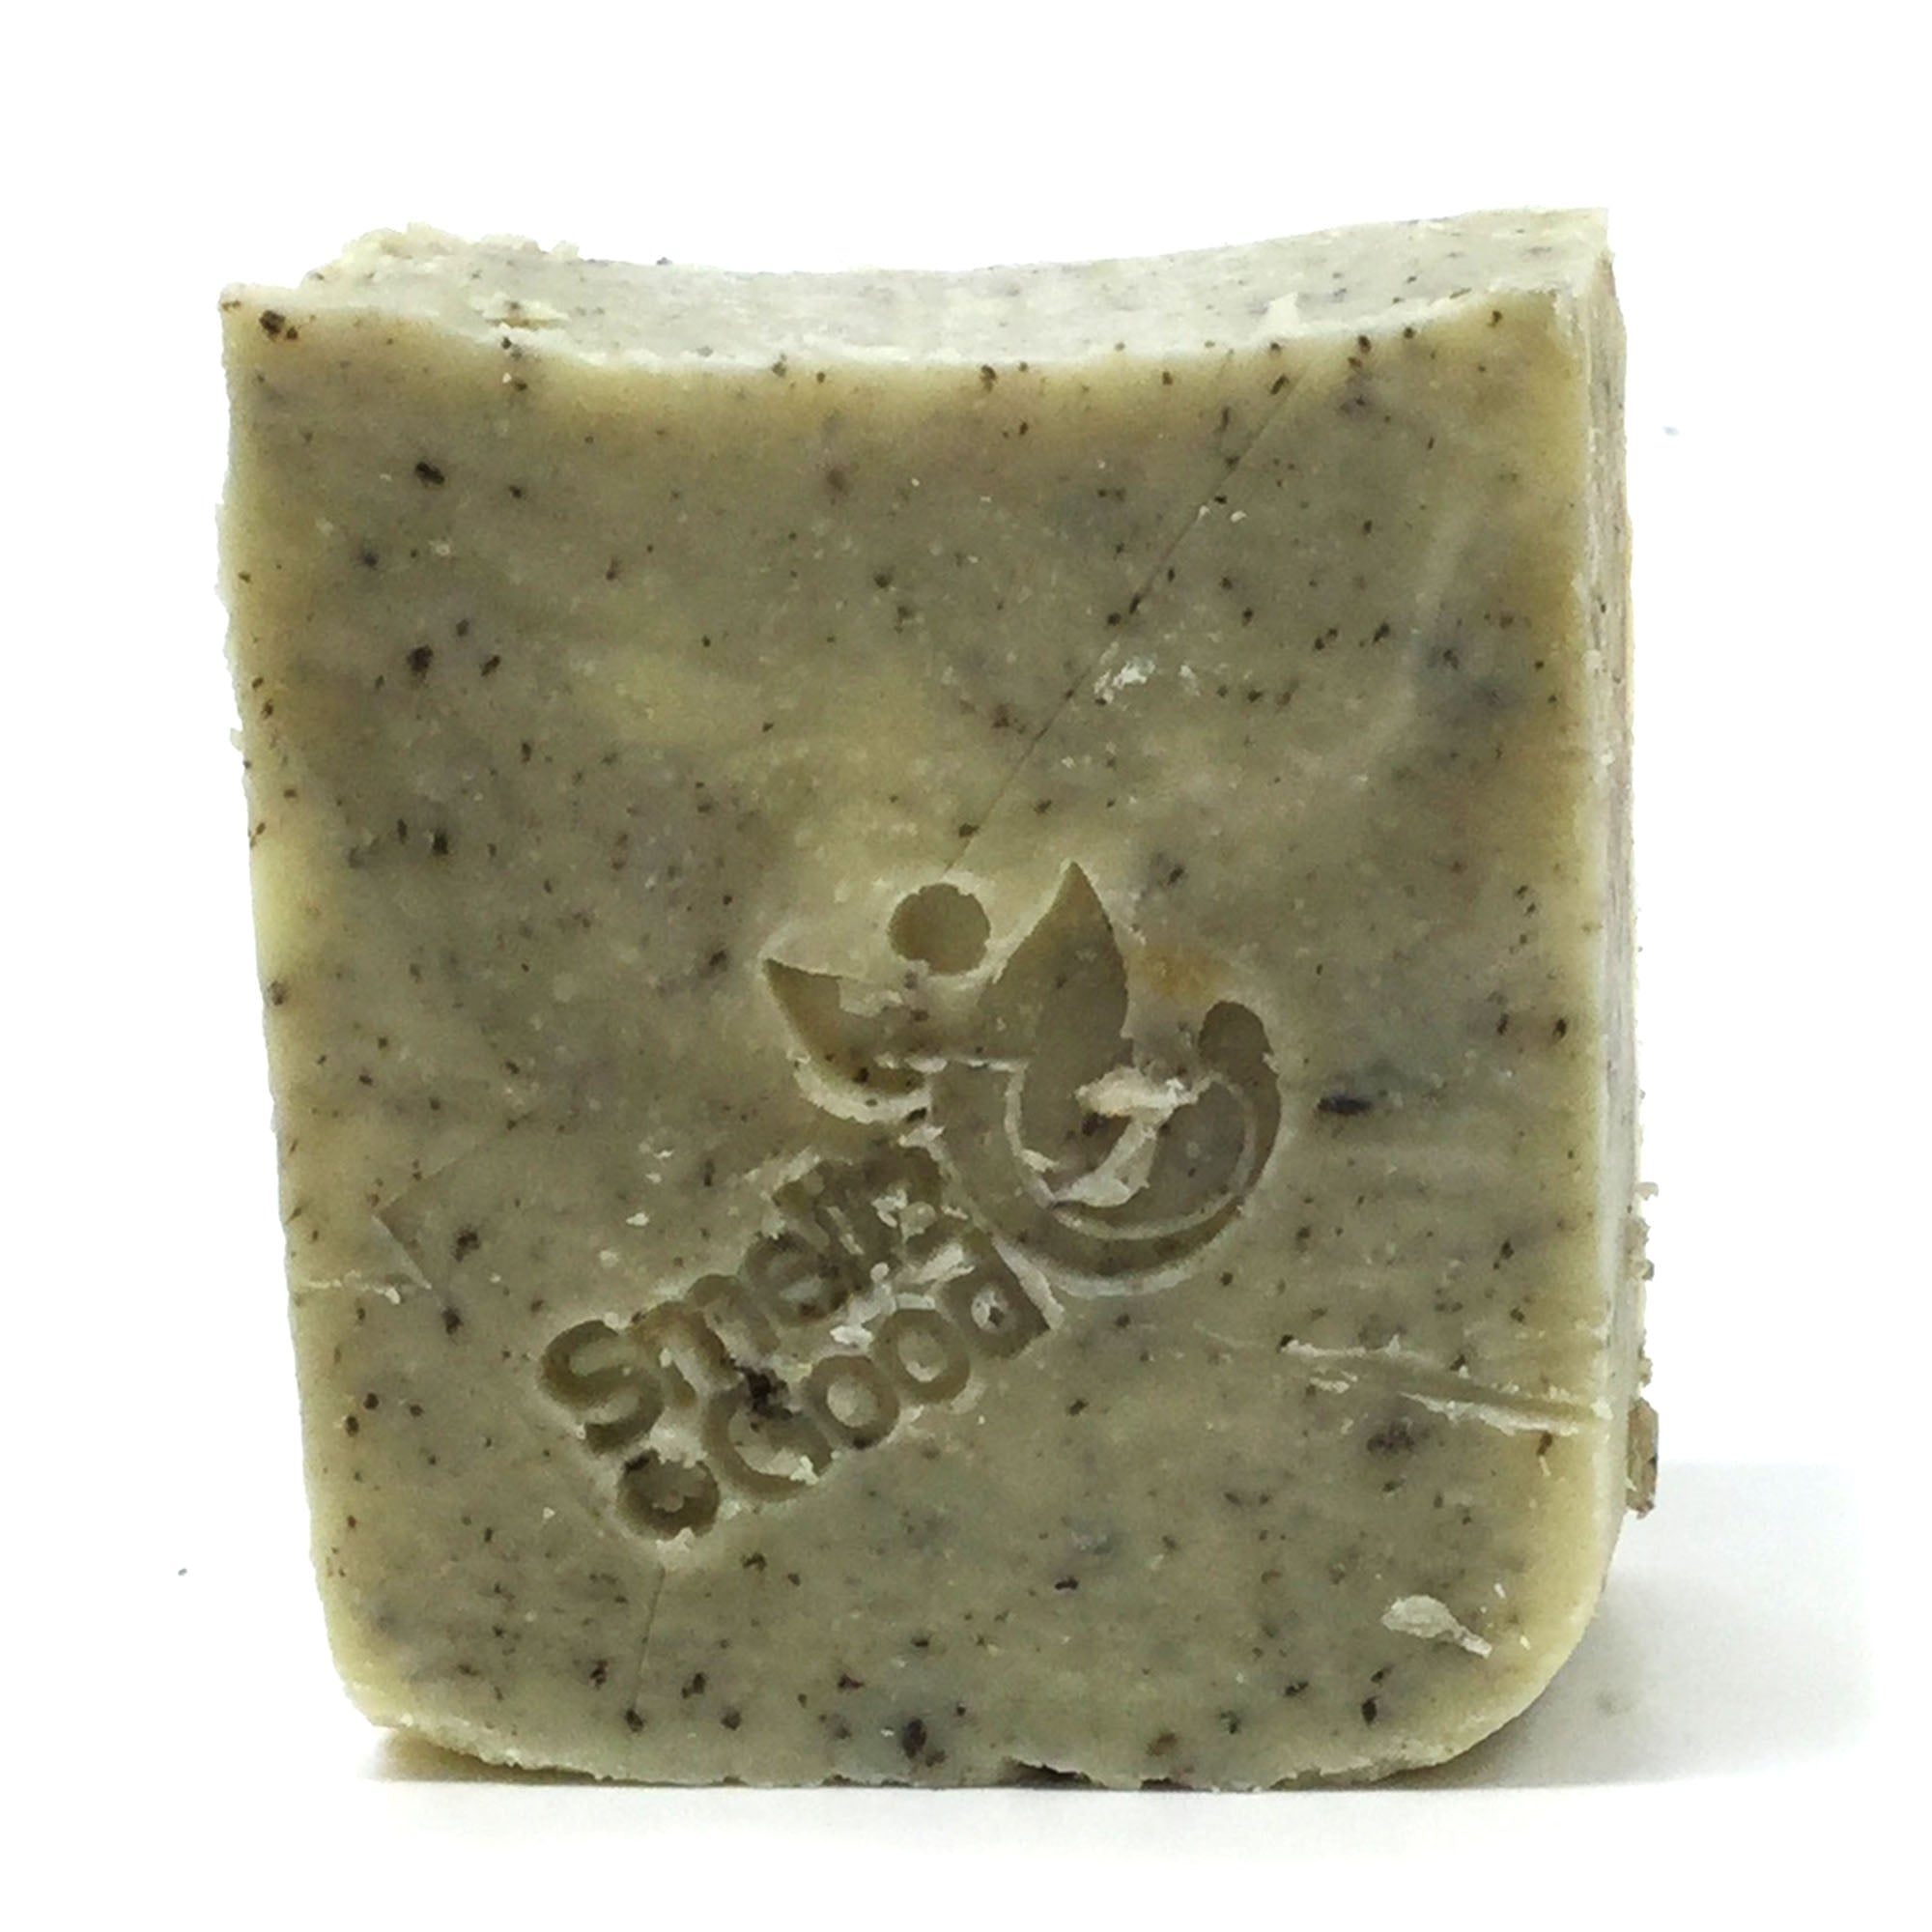 Moisturizing Goat Milk Soap | Dead Sea Mud